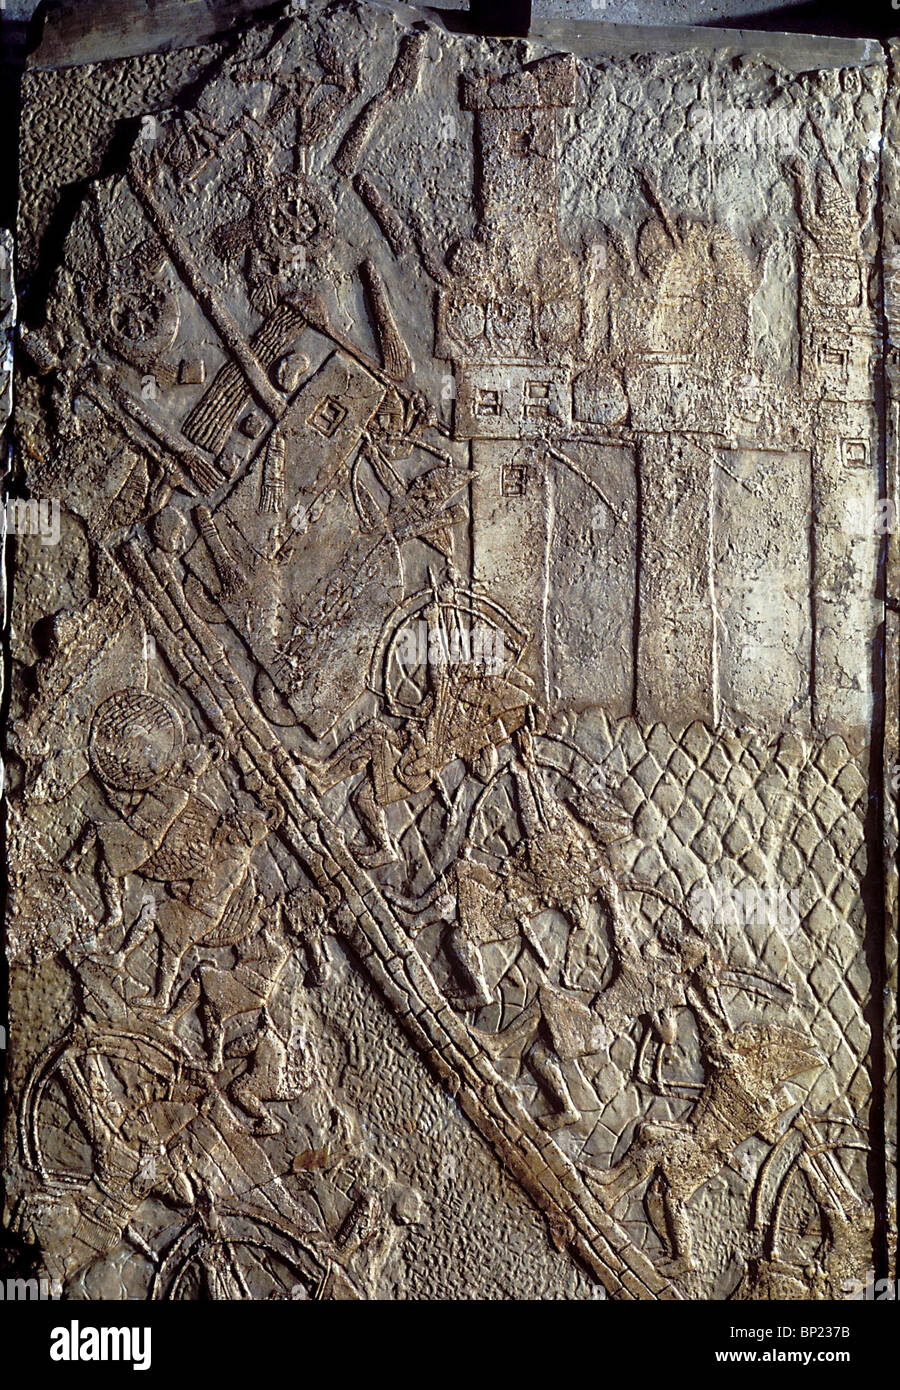 BATTLE SCENES DEPICTING THE CONQUEST OF LACHISH BY THE ASSYRIAN ARMY. RELIEF IN SANNAHERIB'S PALLACE IN NINVEH - Stock Image